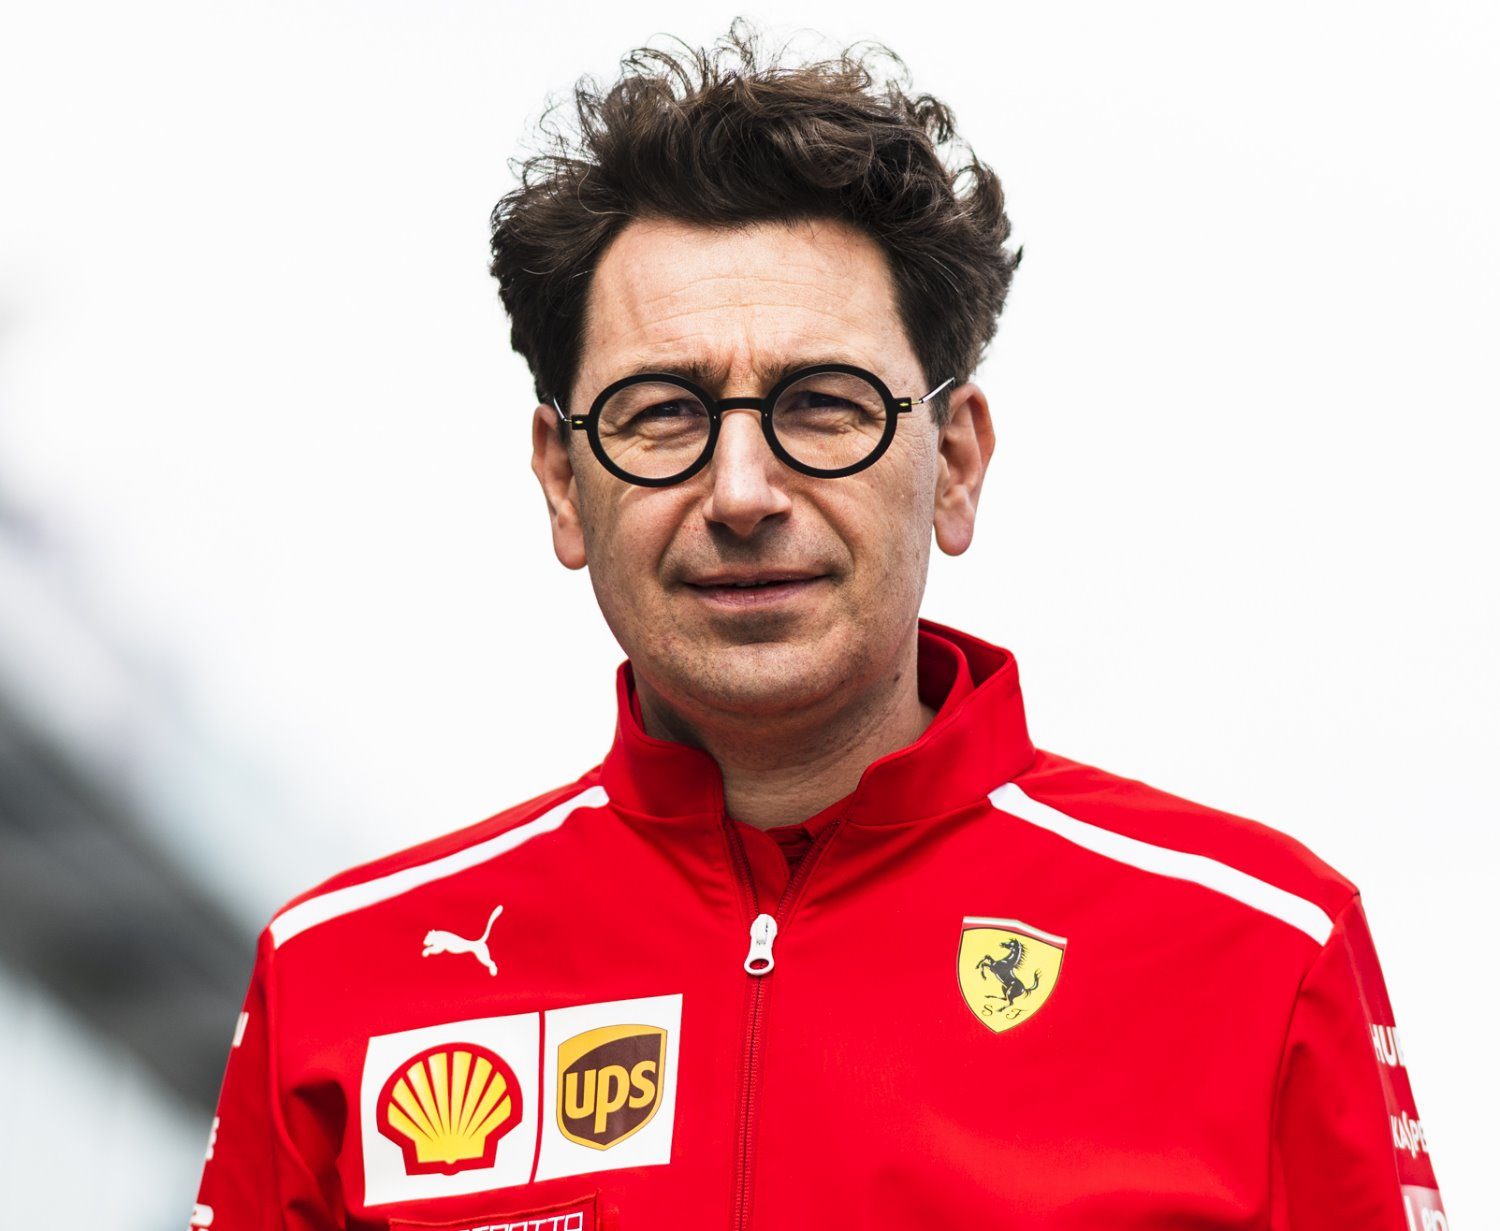 Binotto criticized for how he is managing Vettel/Leclerc rivalry